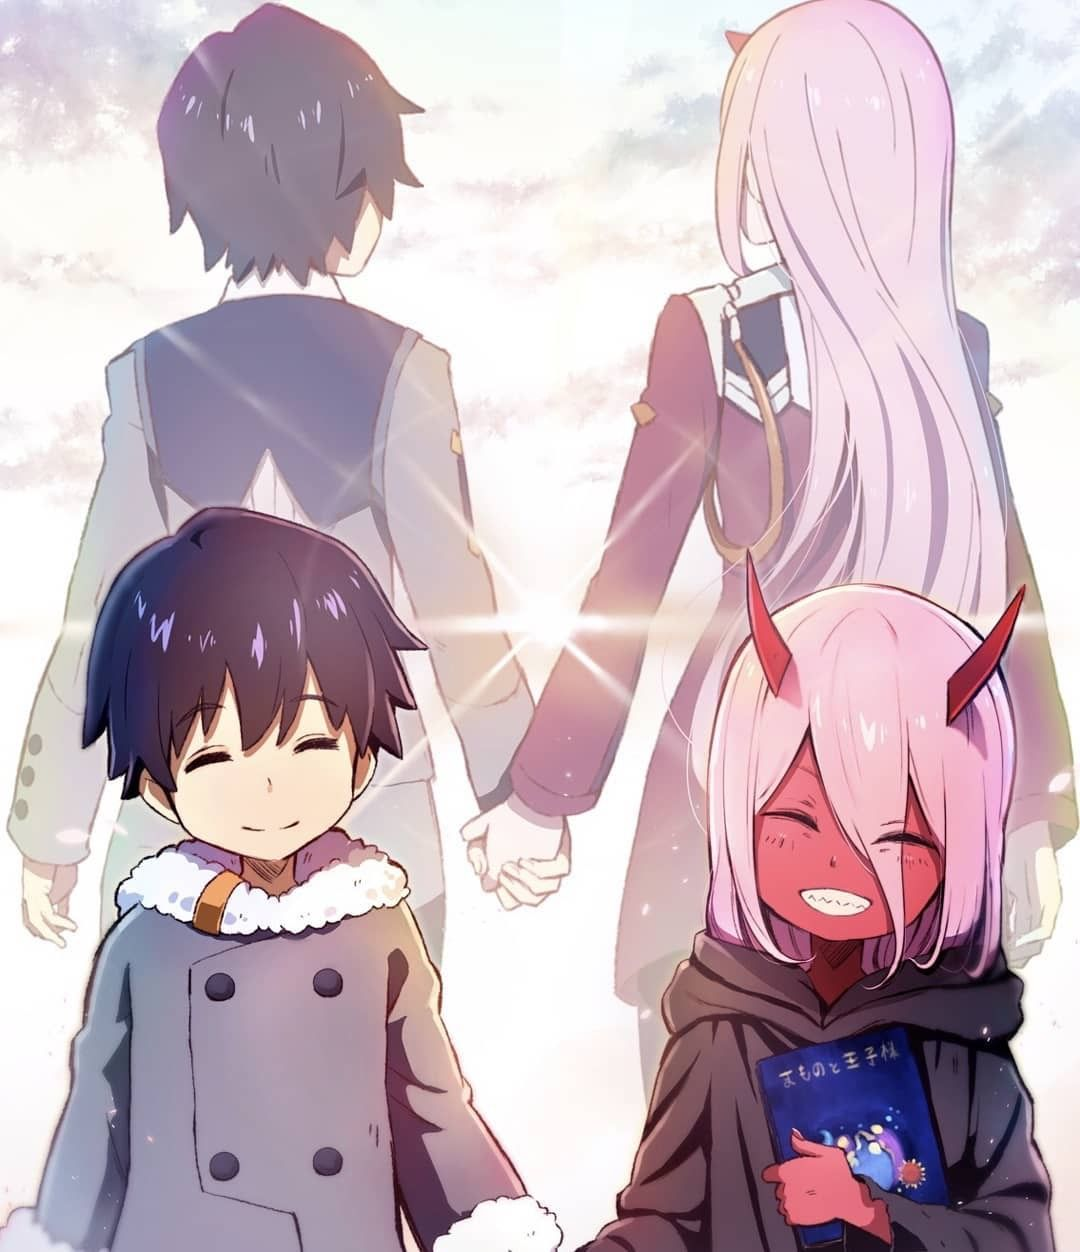 Pin by Jericho on Darling in the franxx Darling in the